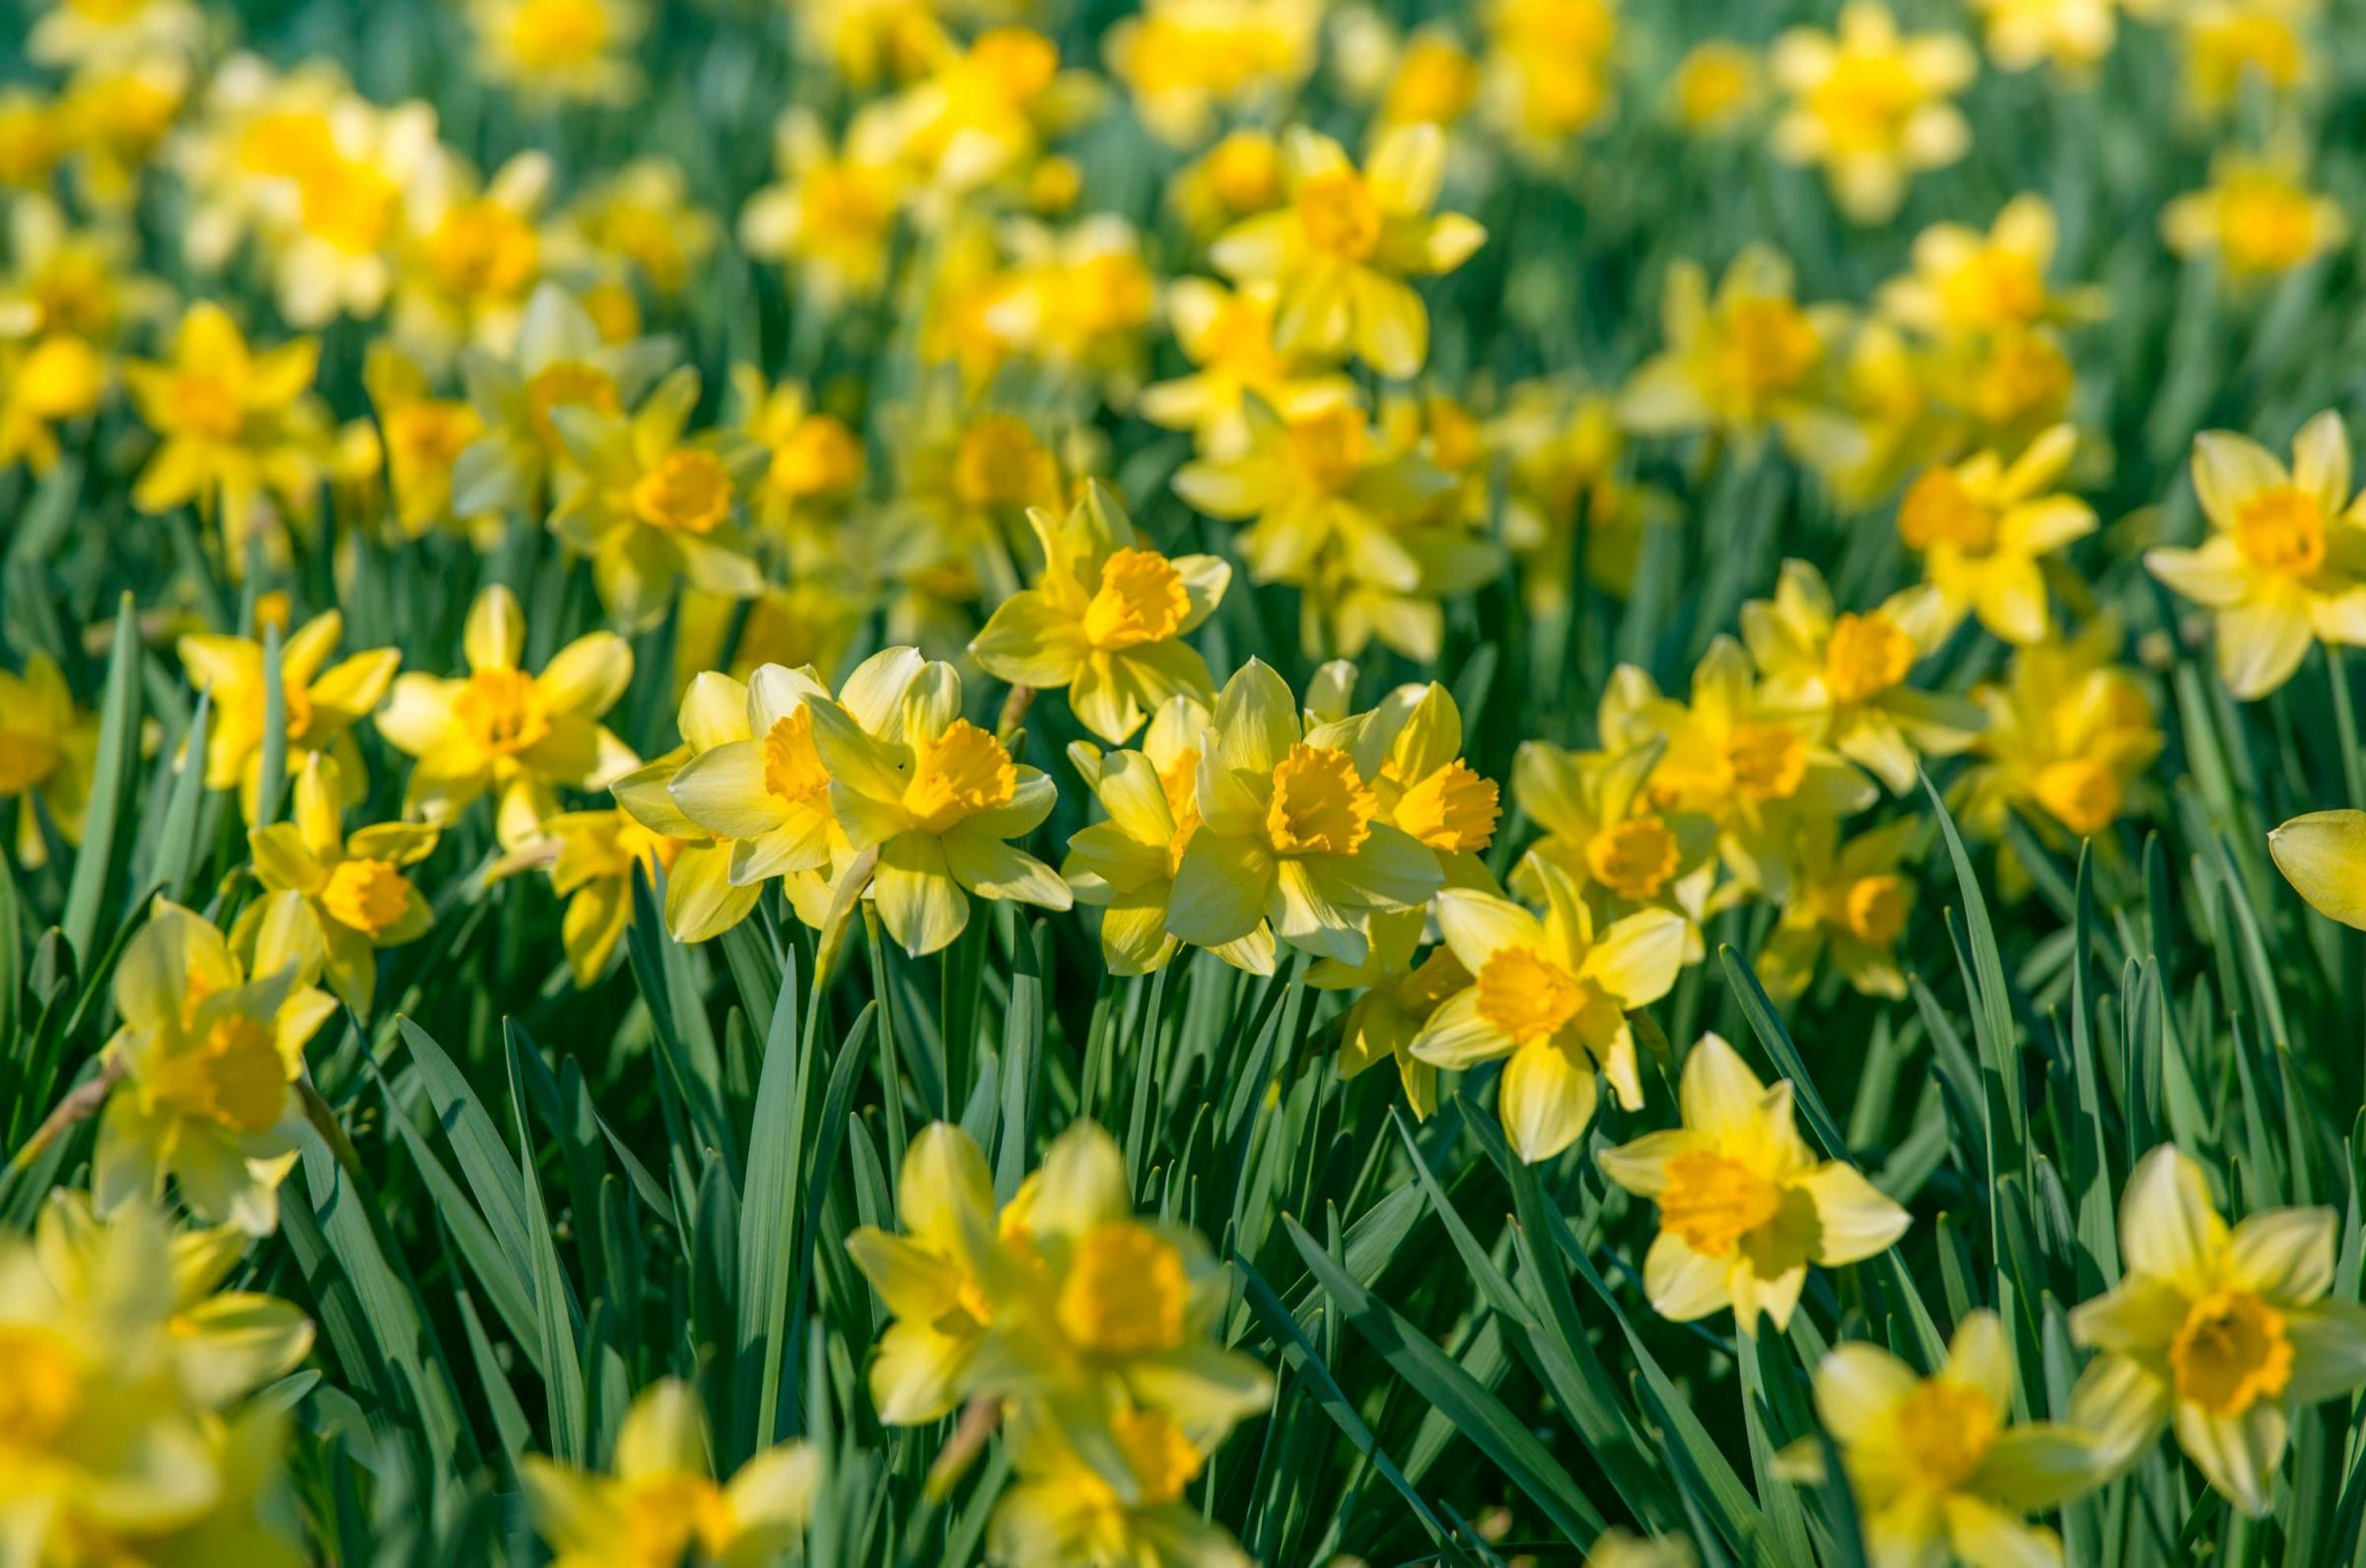 Varfell Farm is described as the largest and leading grower of daffodils in the world Picture from file: PA Images